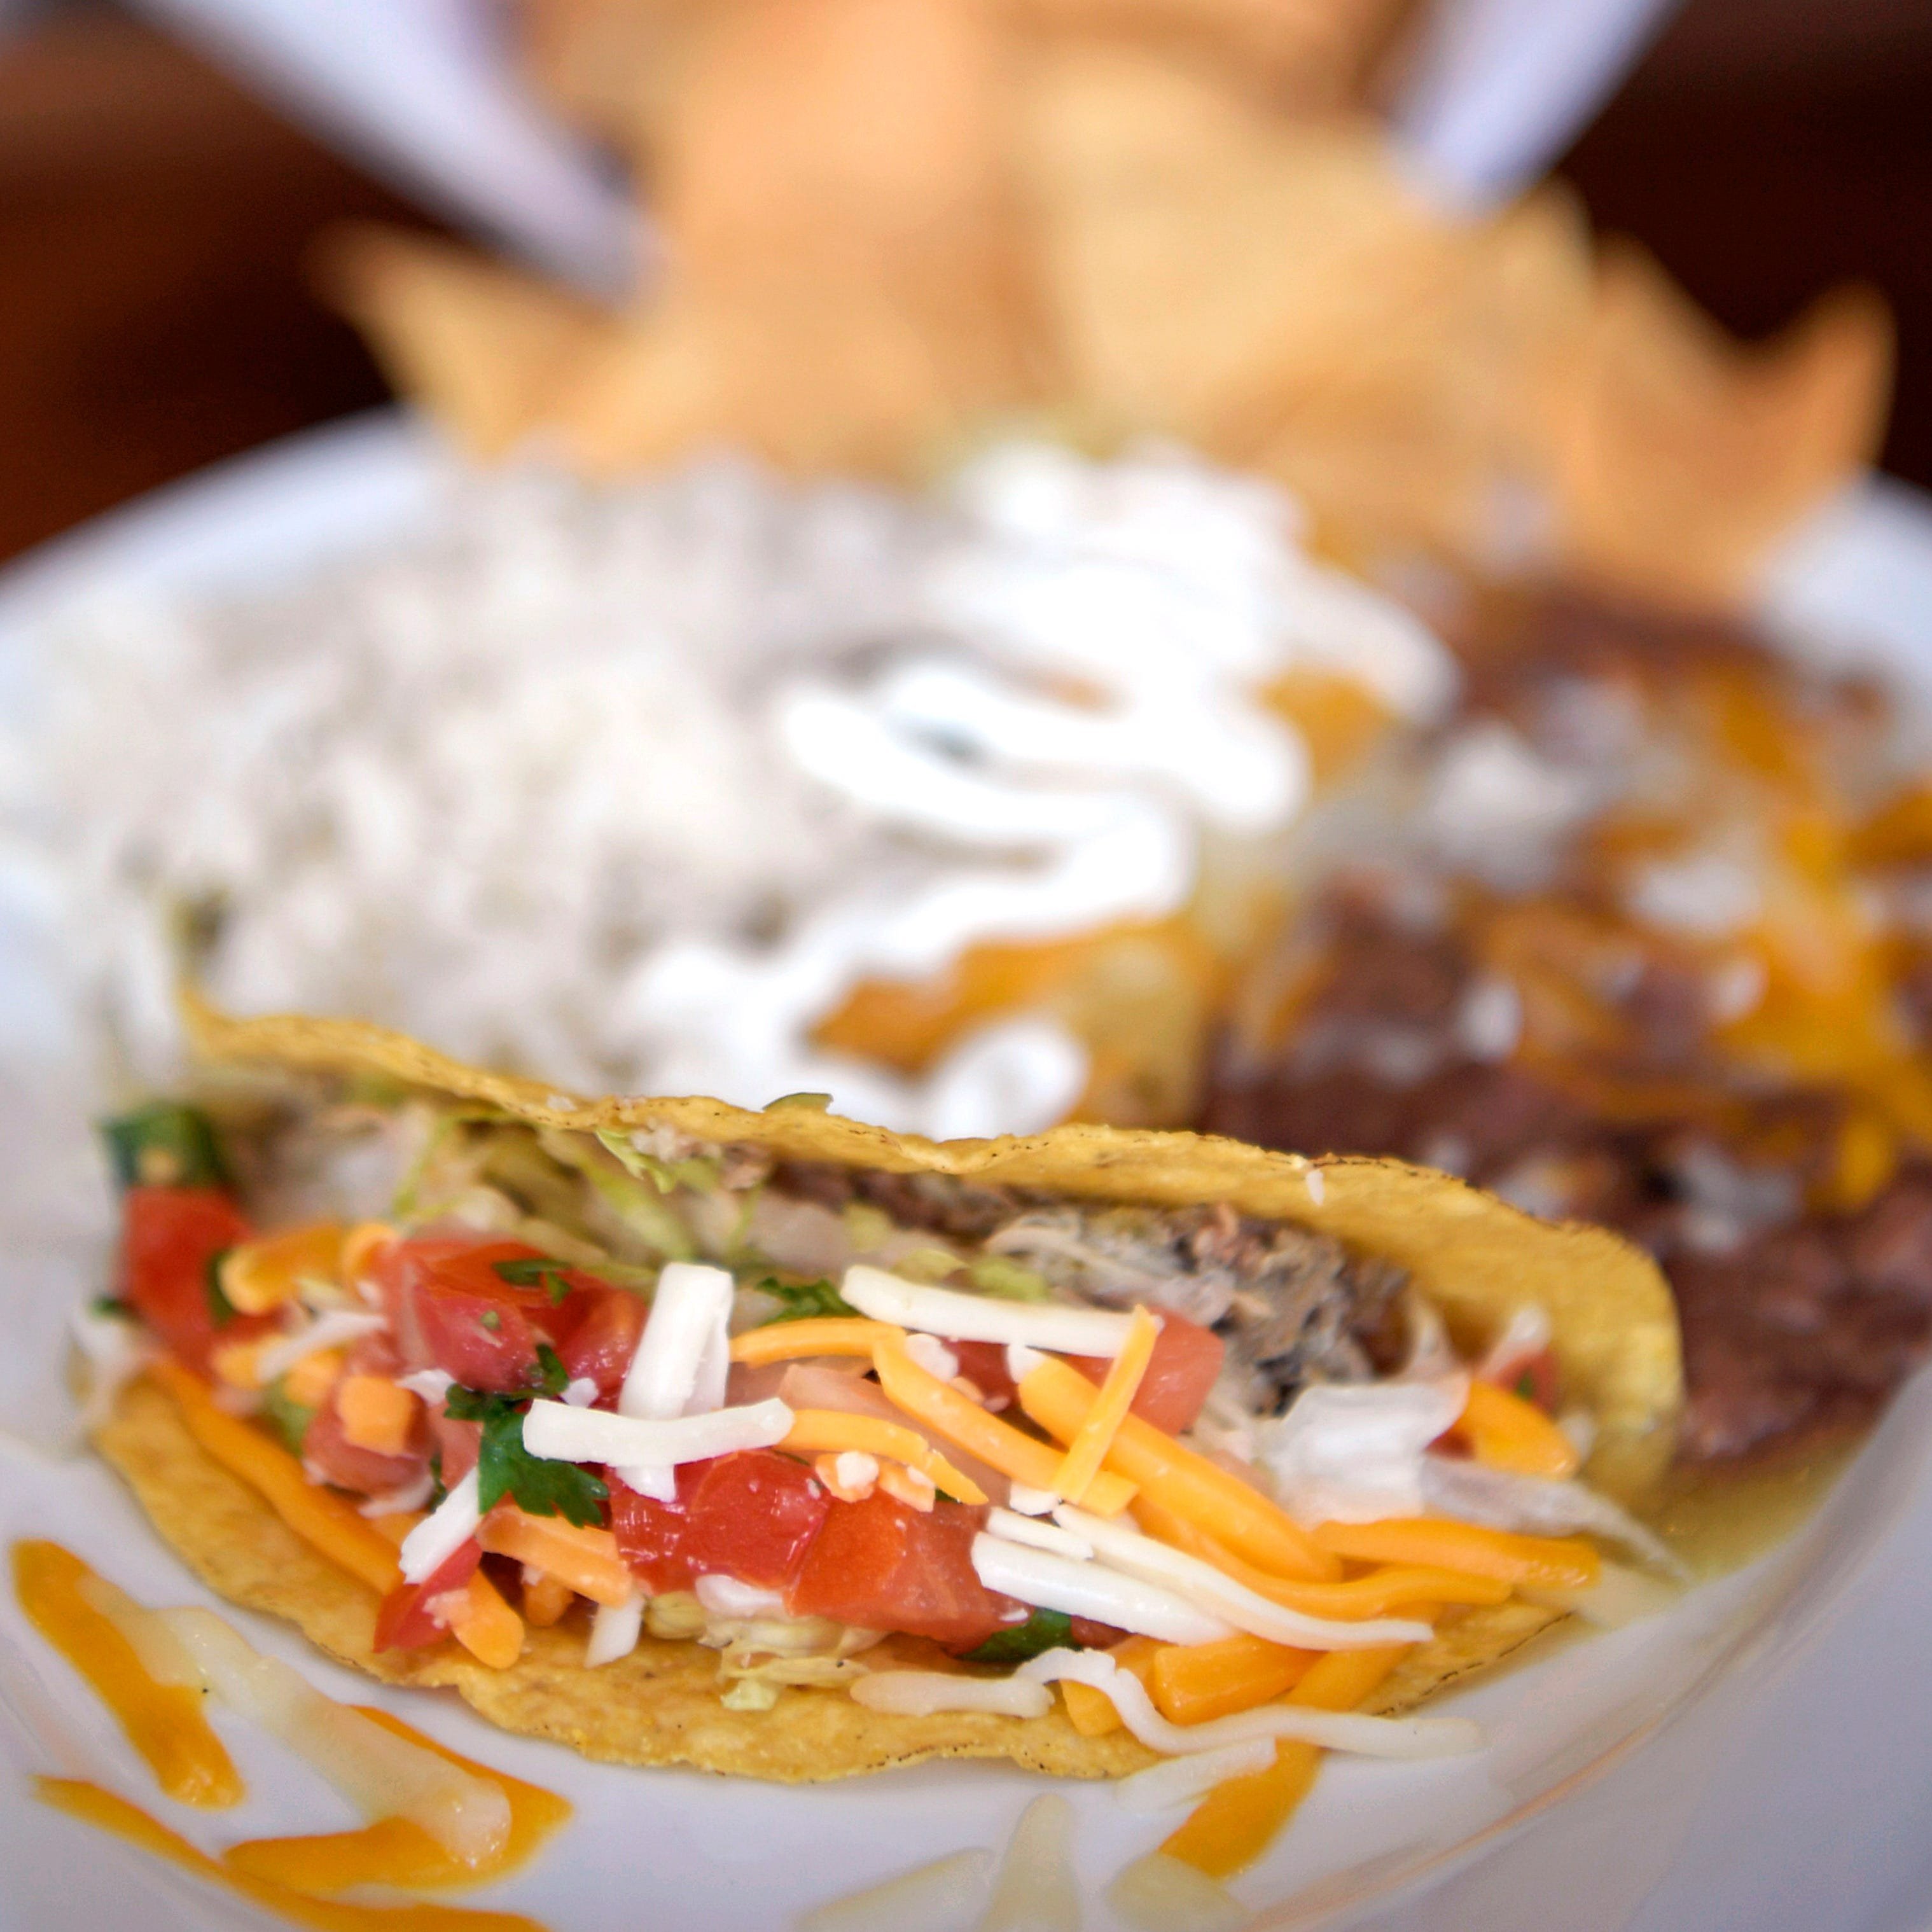 Cheap lunch in Nashville: Taco Cantina in Germantown fits the bill